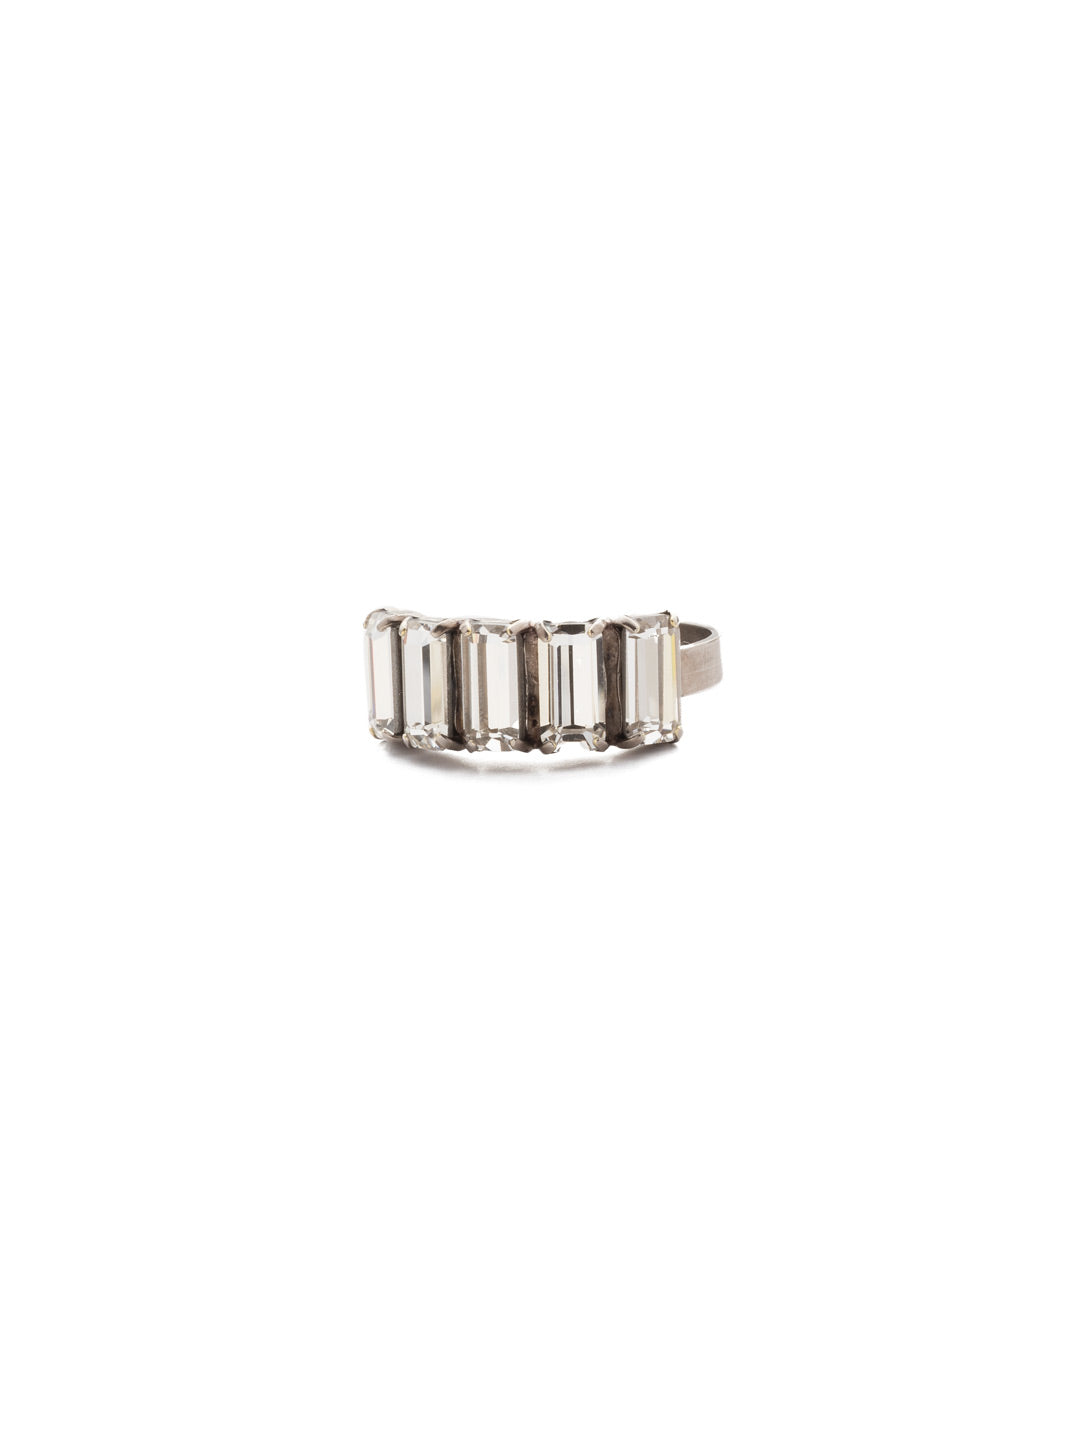 Arden Band Ring - REF29ASCRE